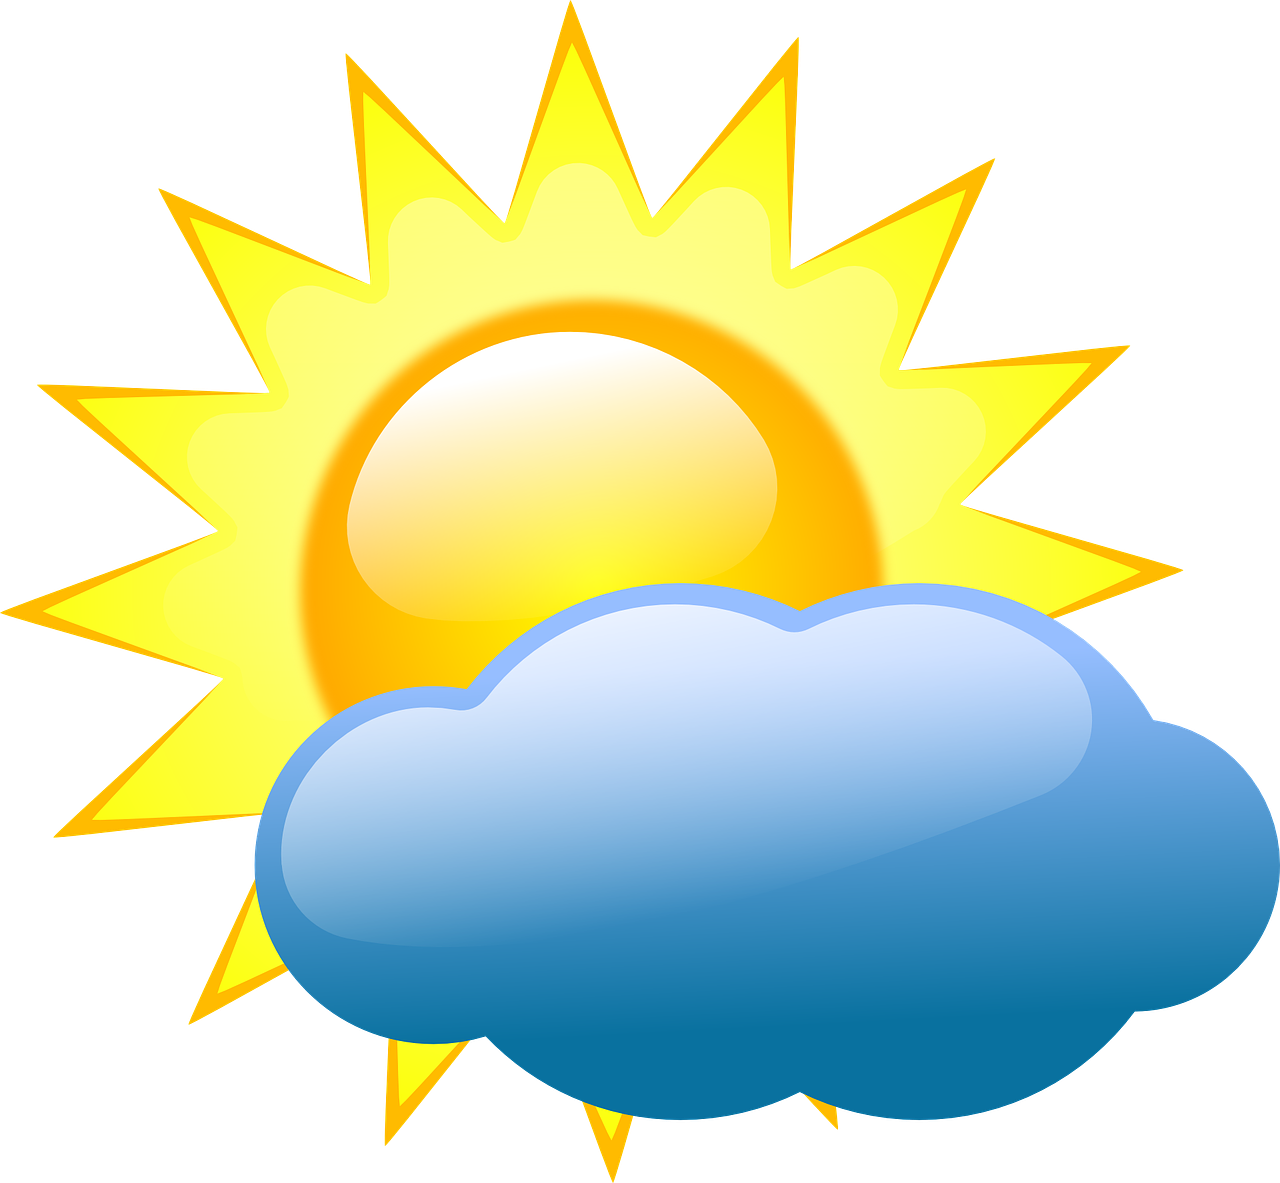 clip art free download . Showering clipart bad weather